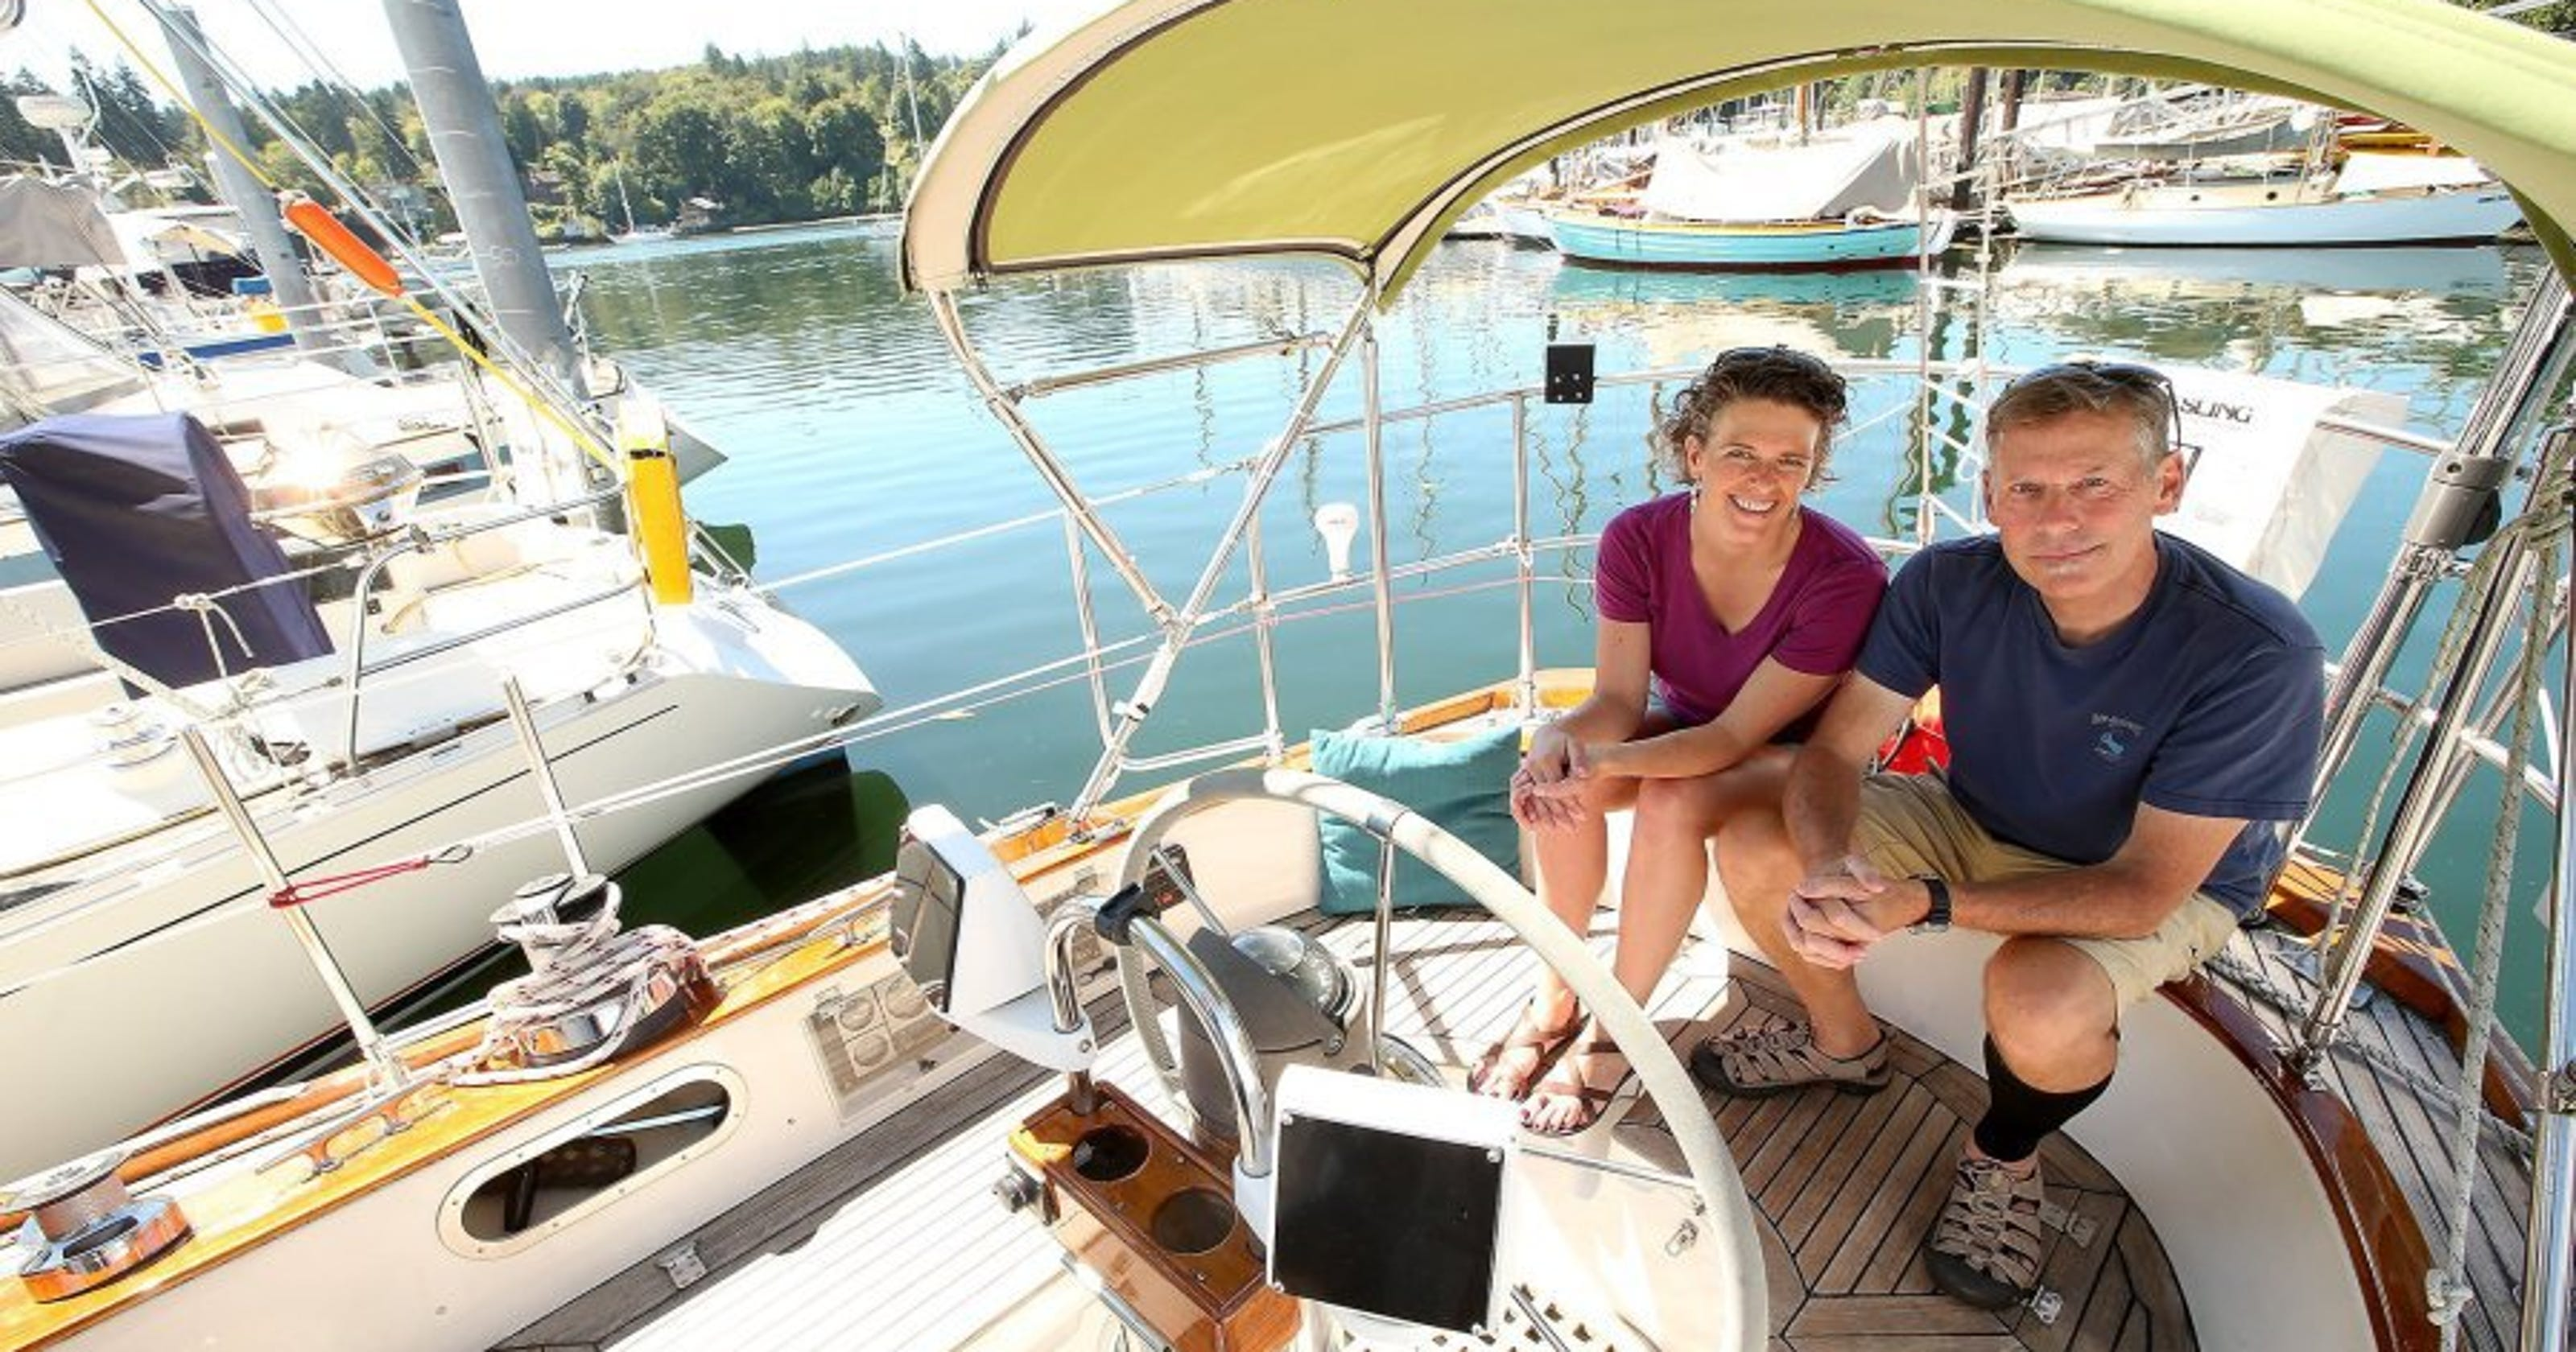 Sailboat owners say ahoy to airbnb guests